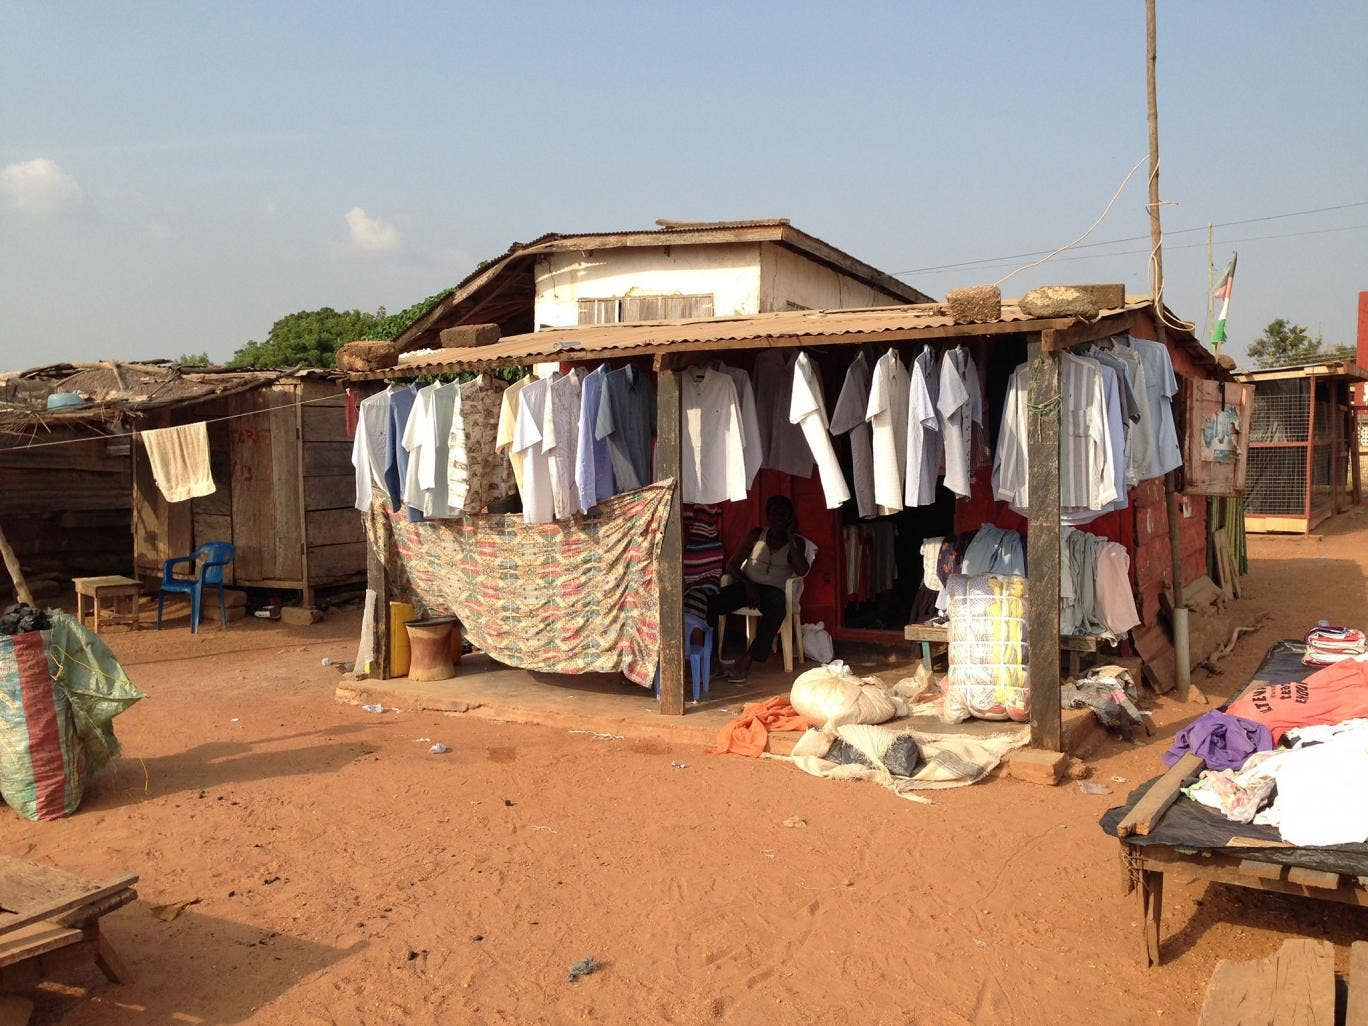 In Kumasi, bales of British charity clothing change hands for £40